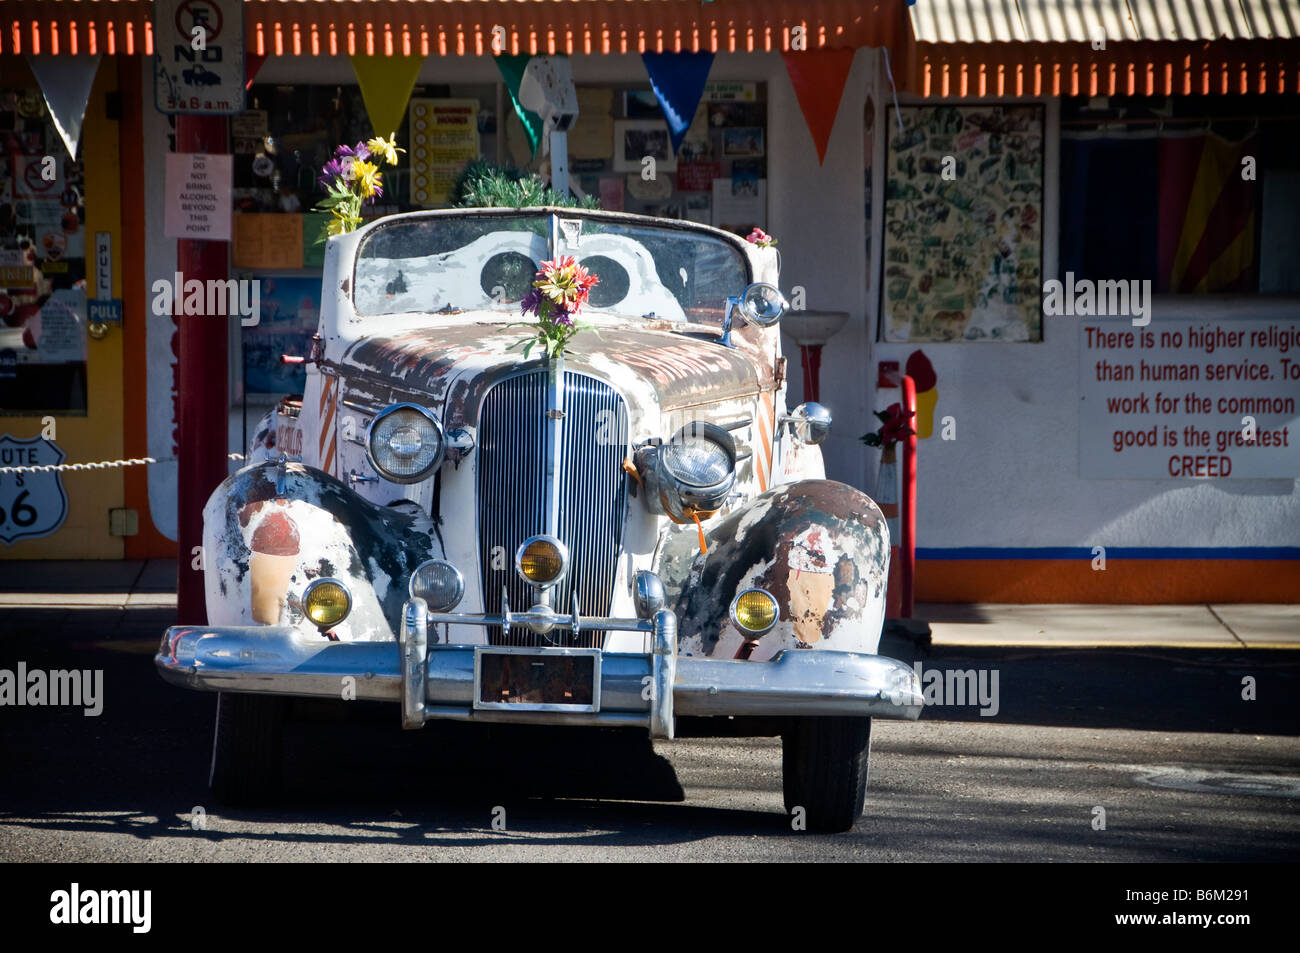 Old, 1930s Mercedes Benz parked in front of the Sno-Cone Cafe that is used as a sign and guidepost. - Stock Image